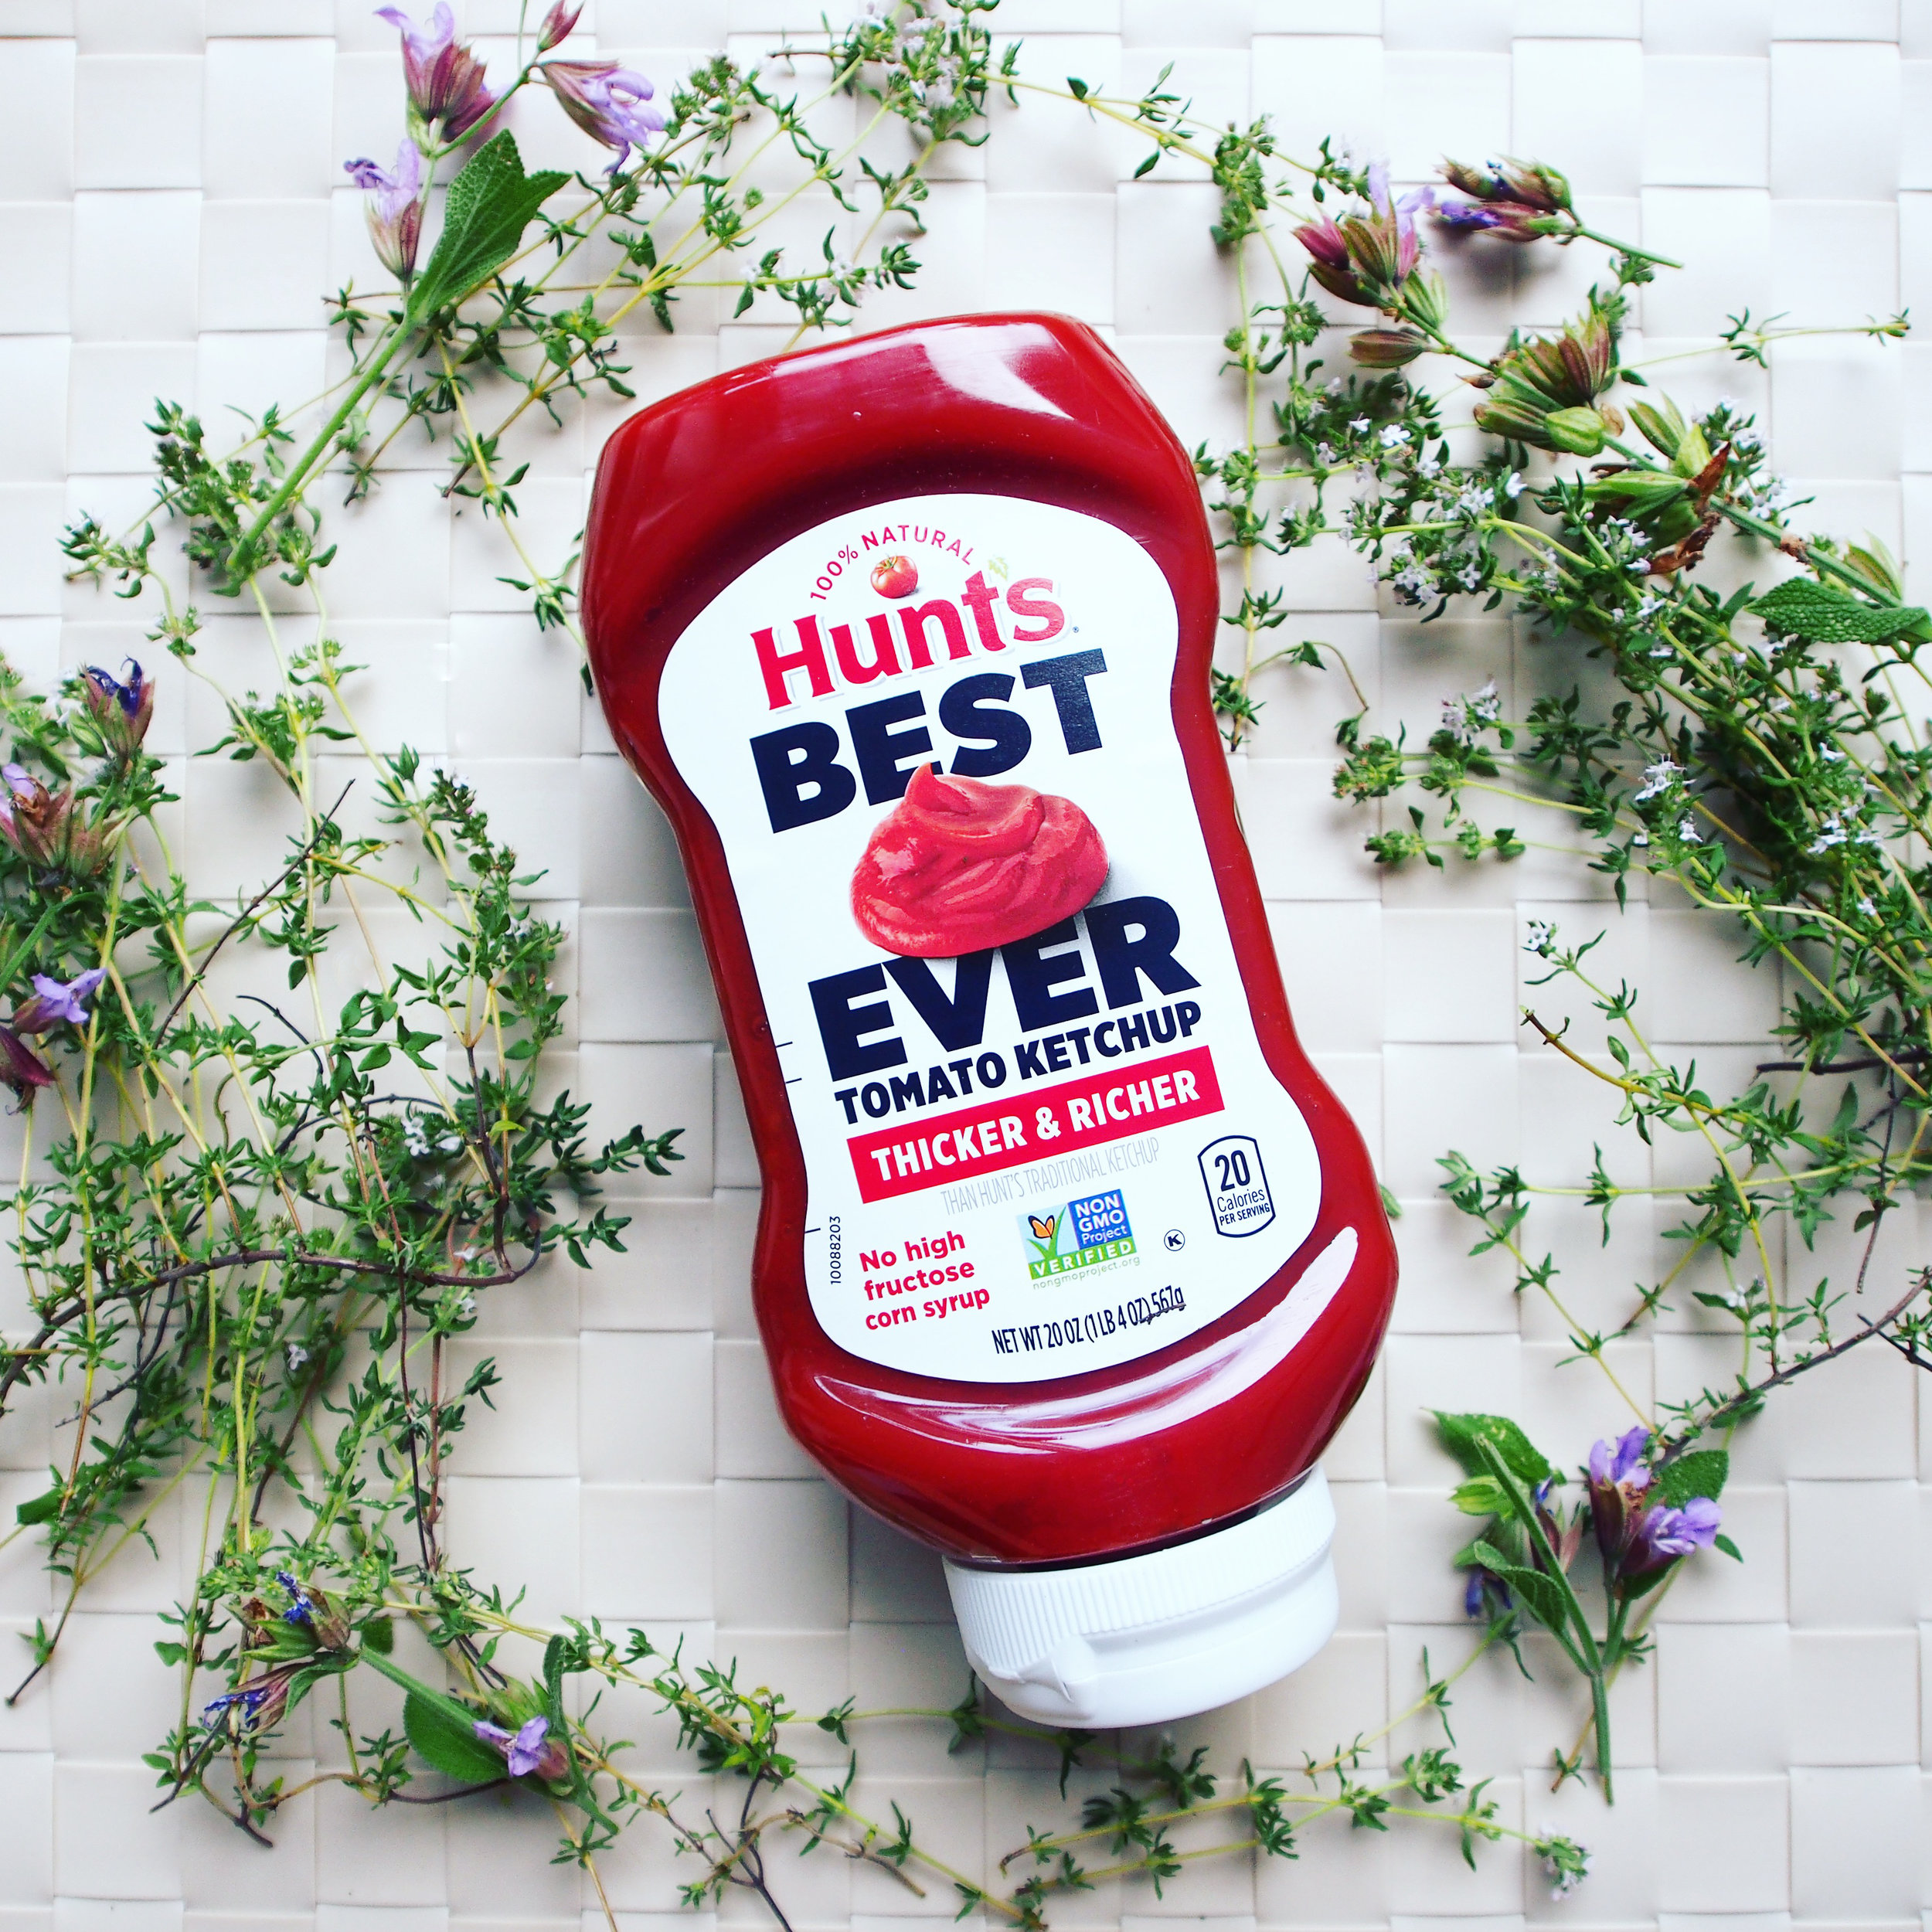 This is a bottle of Hunt's Best Ever Ketchup. It's a great ketchup to use for summer grilling and get togethers!